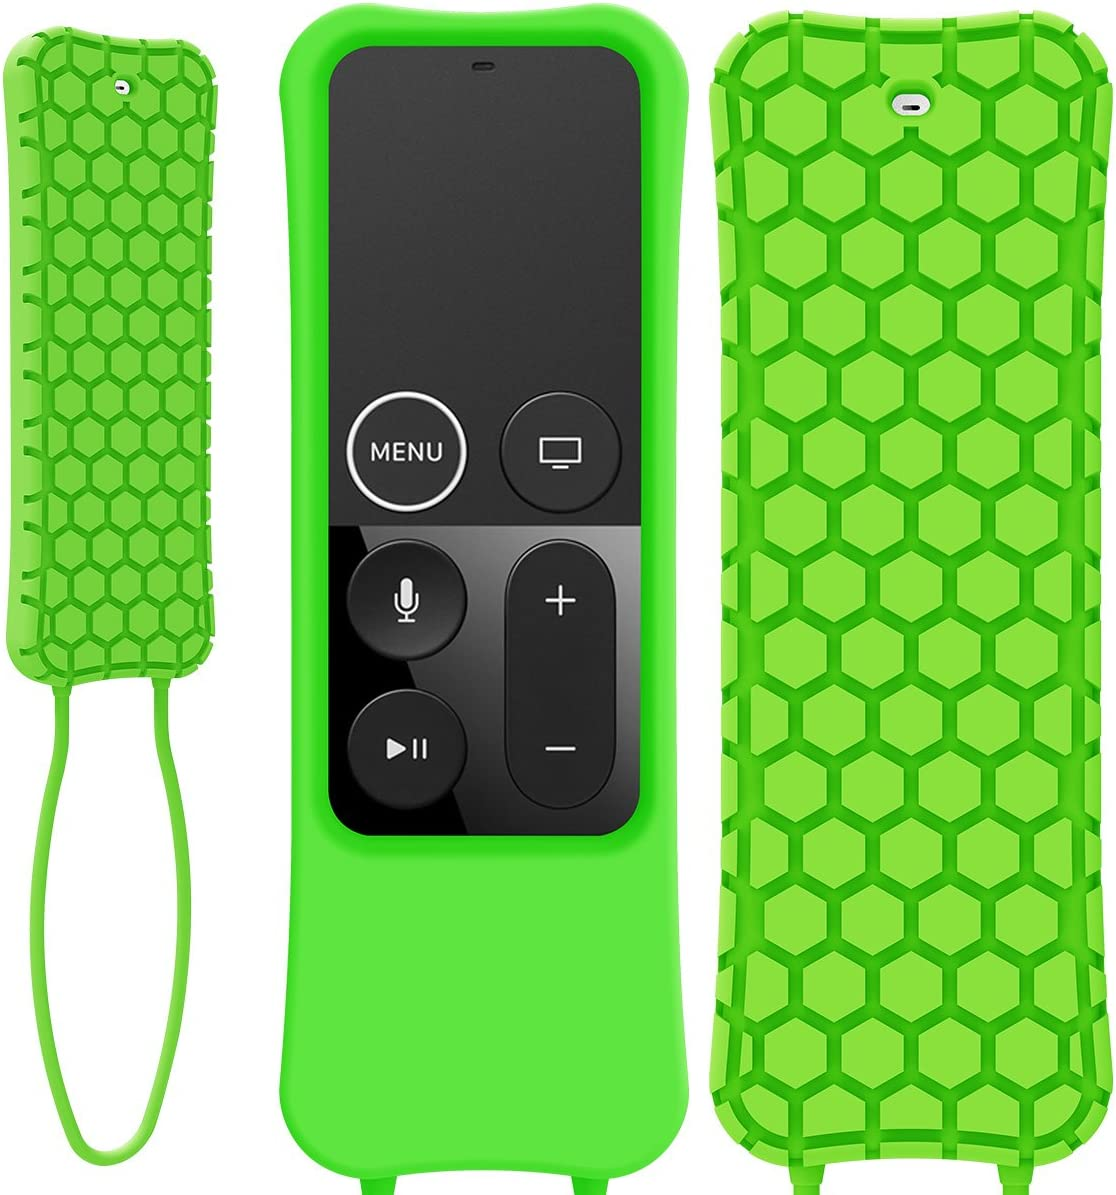 Kutop Compatible Apple TV Remote Case, Soft Silicone Protective Cover Light Weight Shock Proof Skin with Anti-Drop Strap fit Apple TV Remote Controller, 4K/ 4th Generation